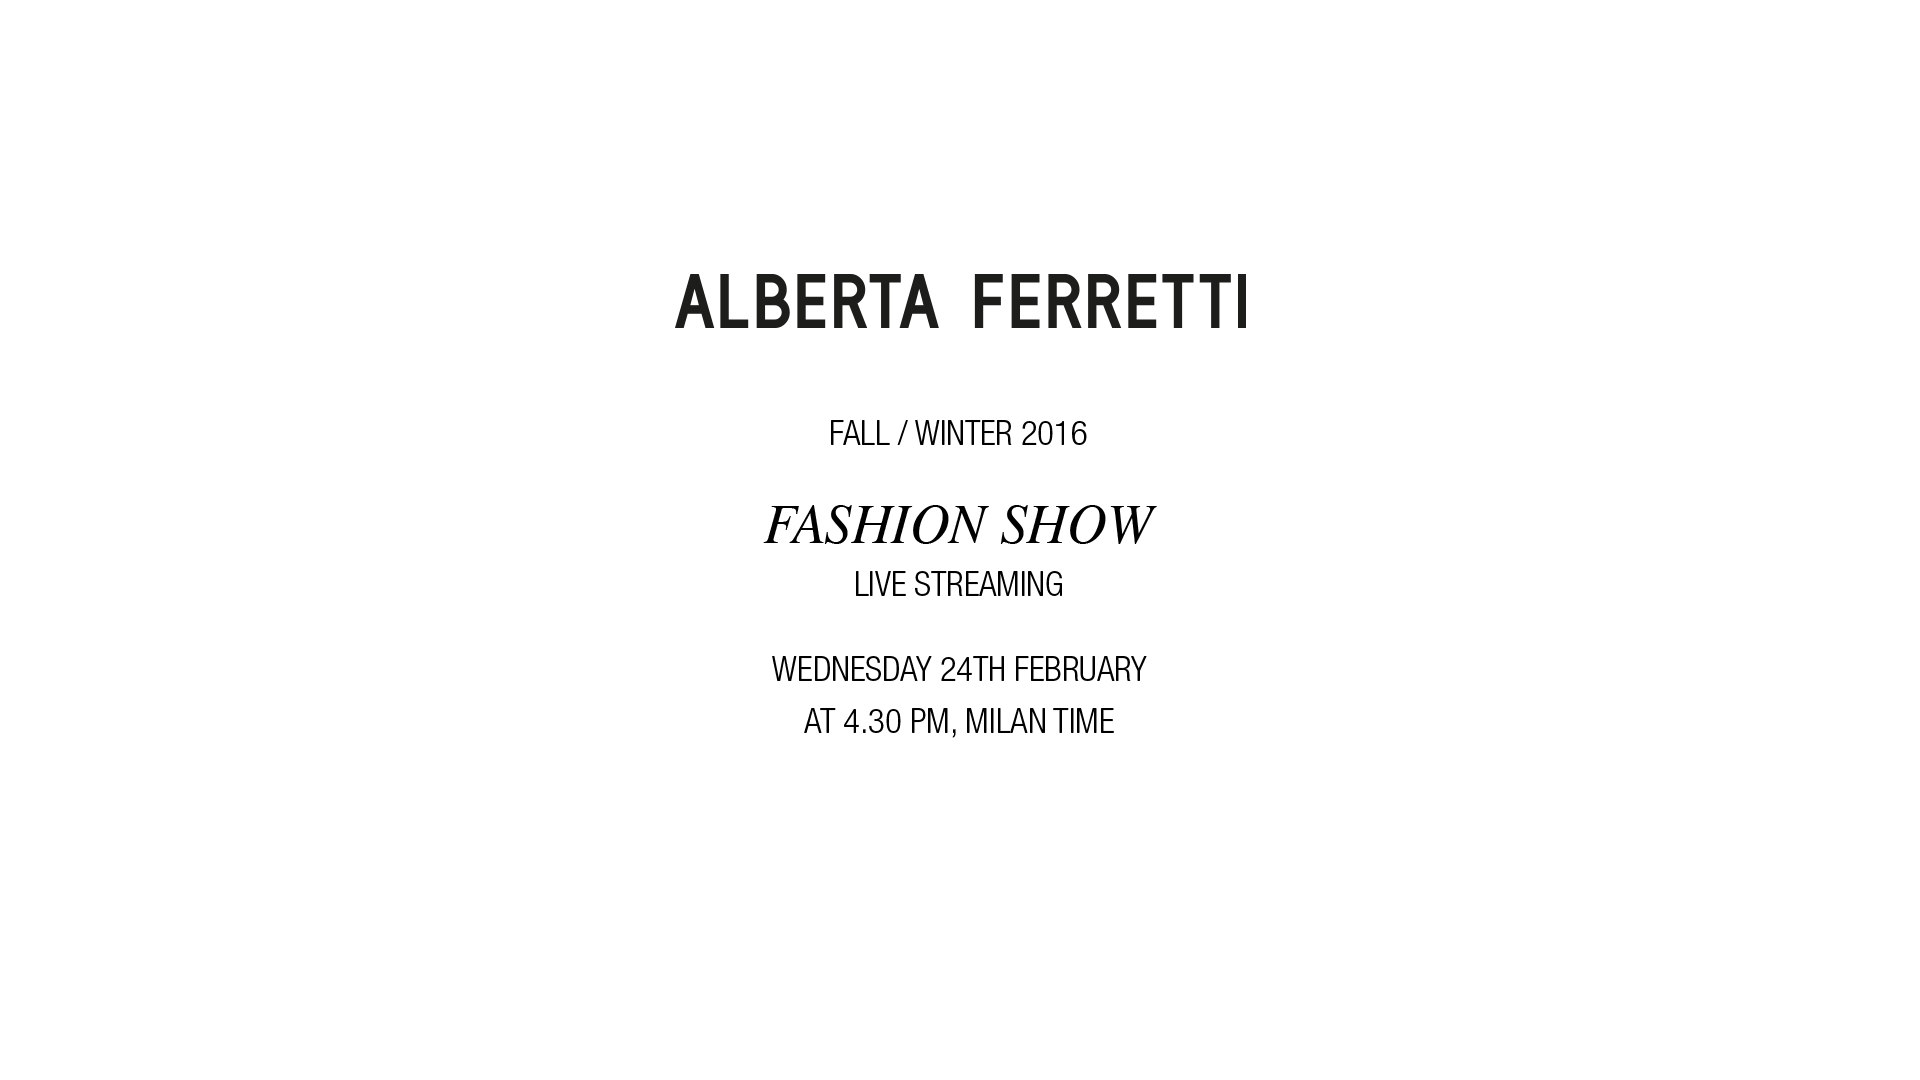 Alberta Ferretti Fall Winter 2016 Women's Fashion Show Live Streaming Milan